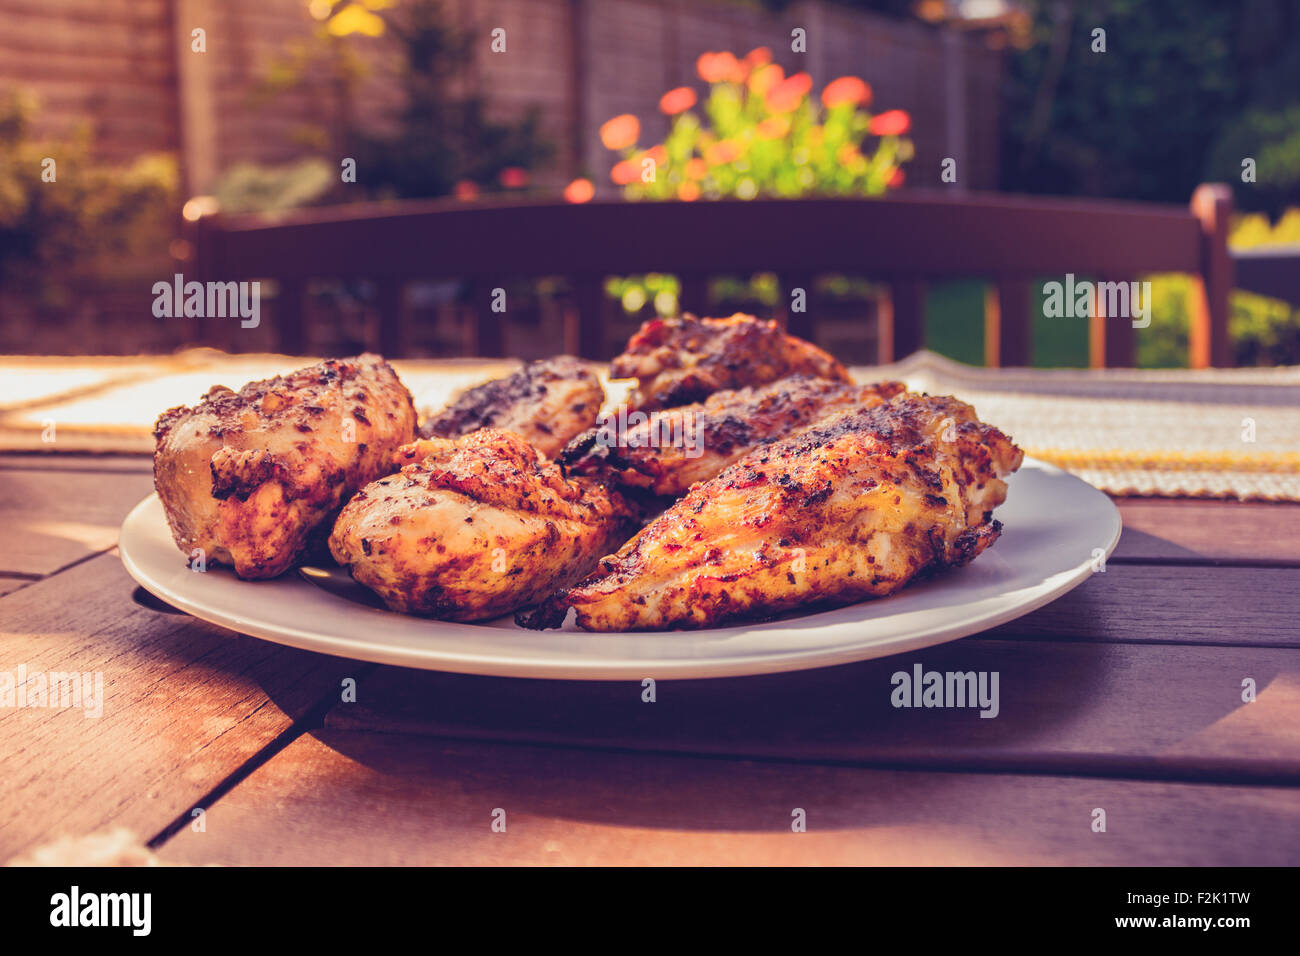 Chicken on a plate outside - Stock Image